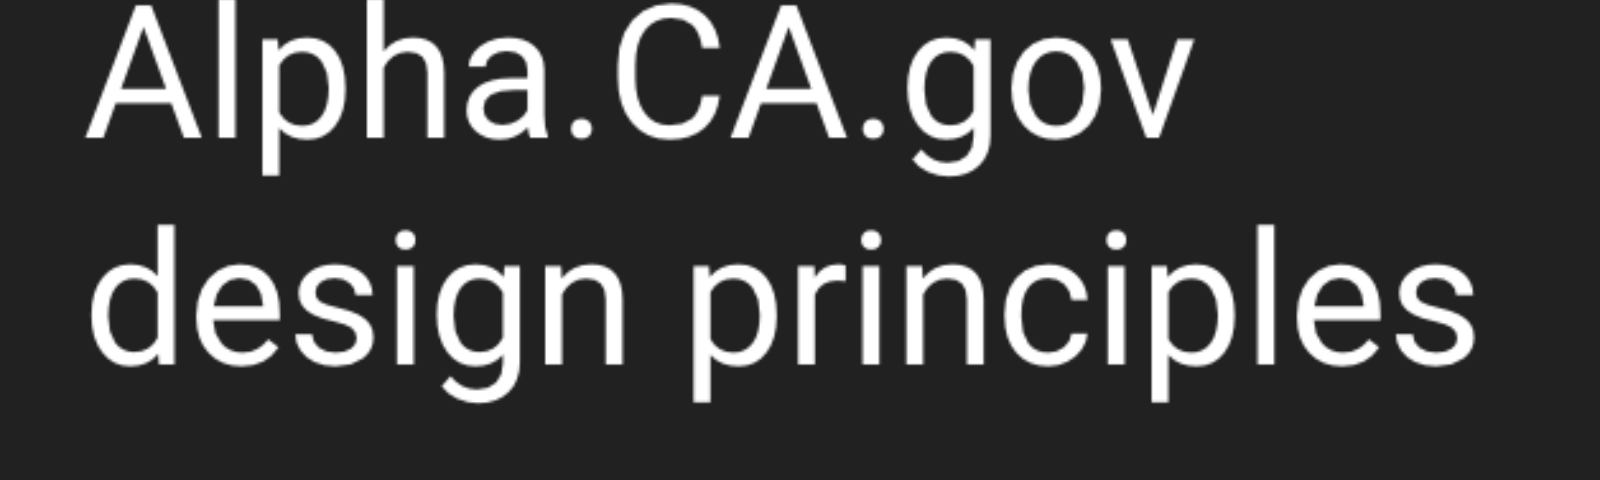 """Very simple black and white graphic that says """"Alpha.CA.gov design principles"""""""